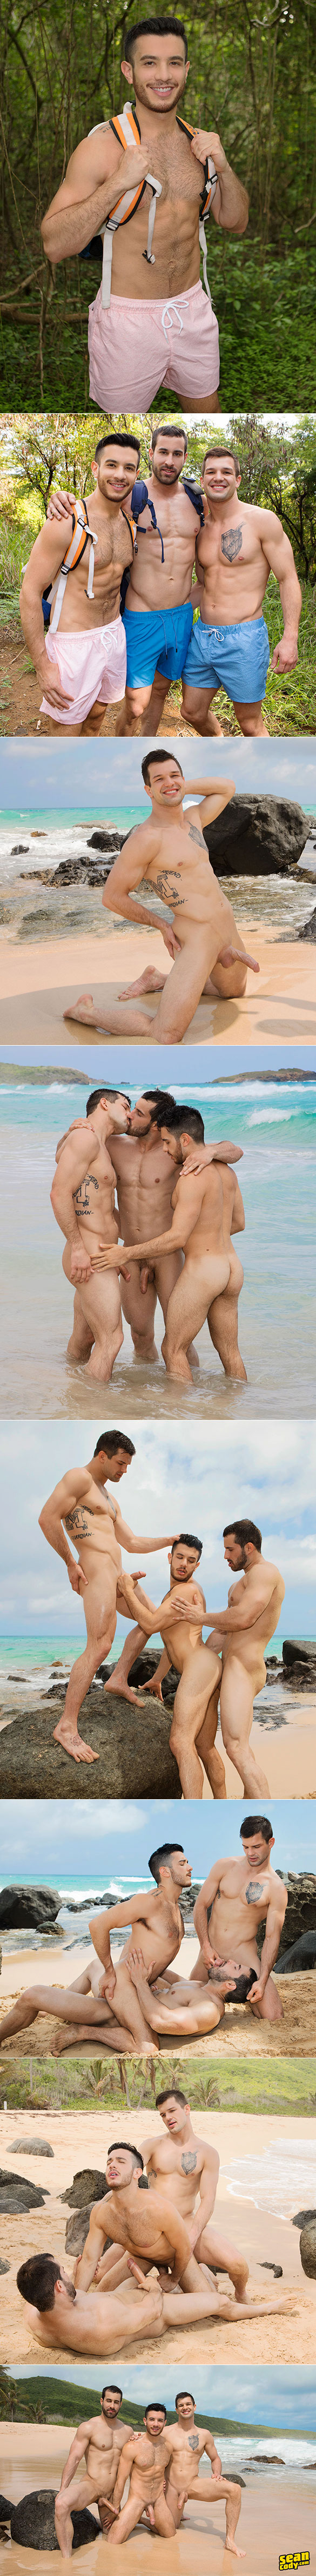 """Sean Cody: Brysen and Randy tag team Manny bareback in """"Puerto Rican Getaway, Day 2"""""""